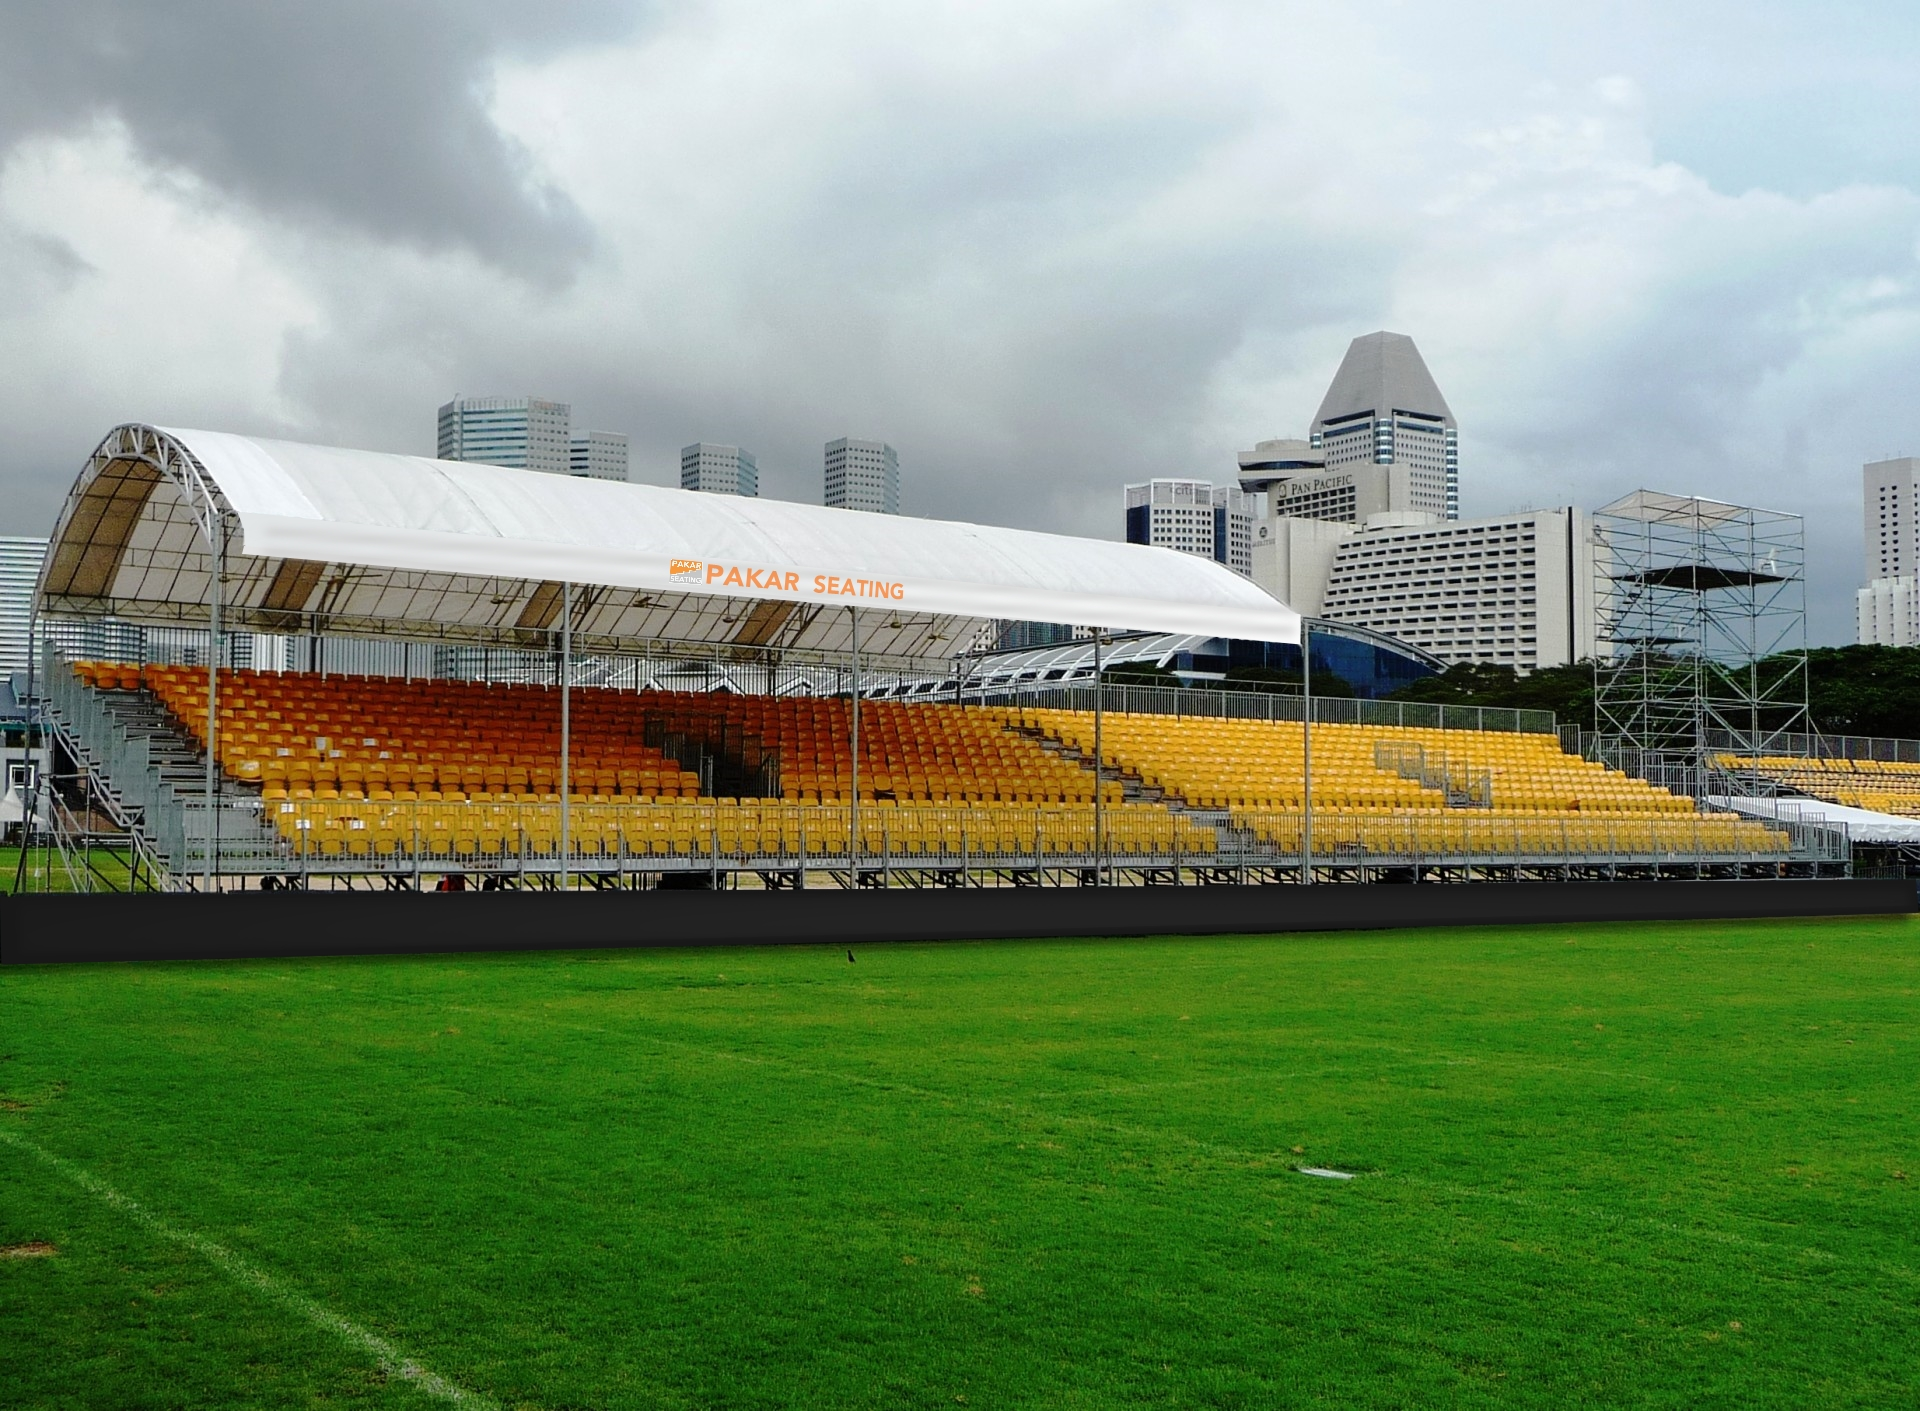 Grandstand design with Roofing